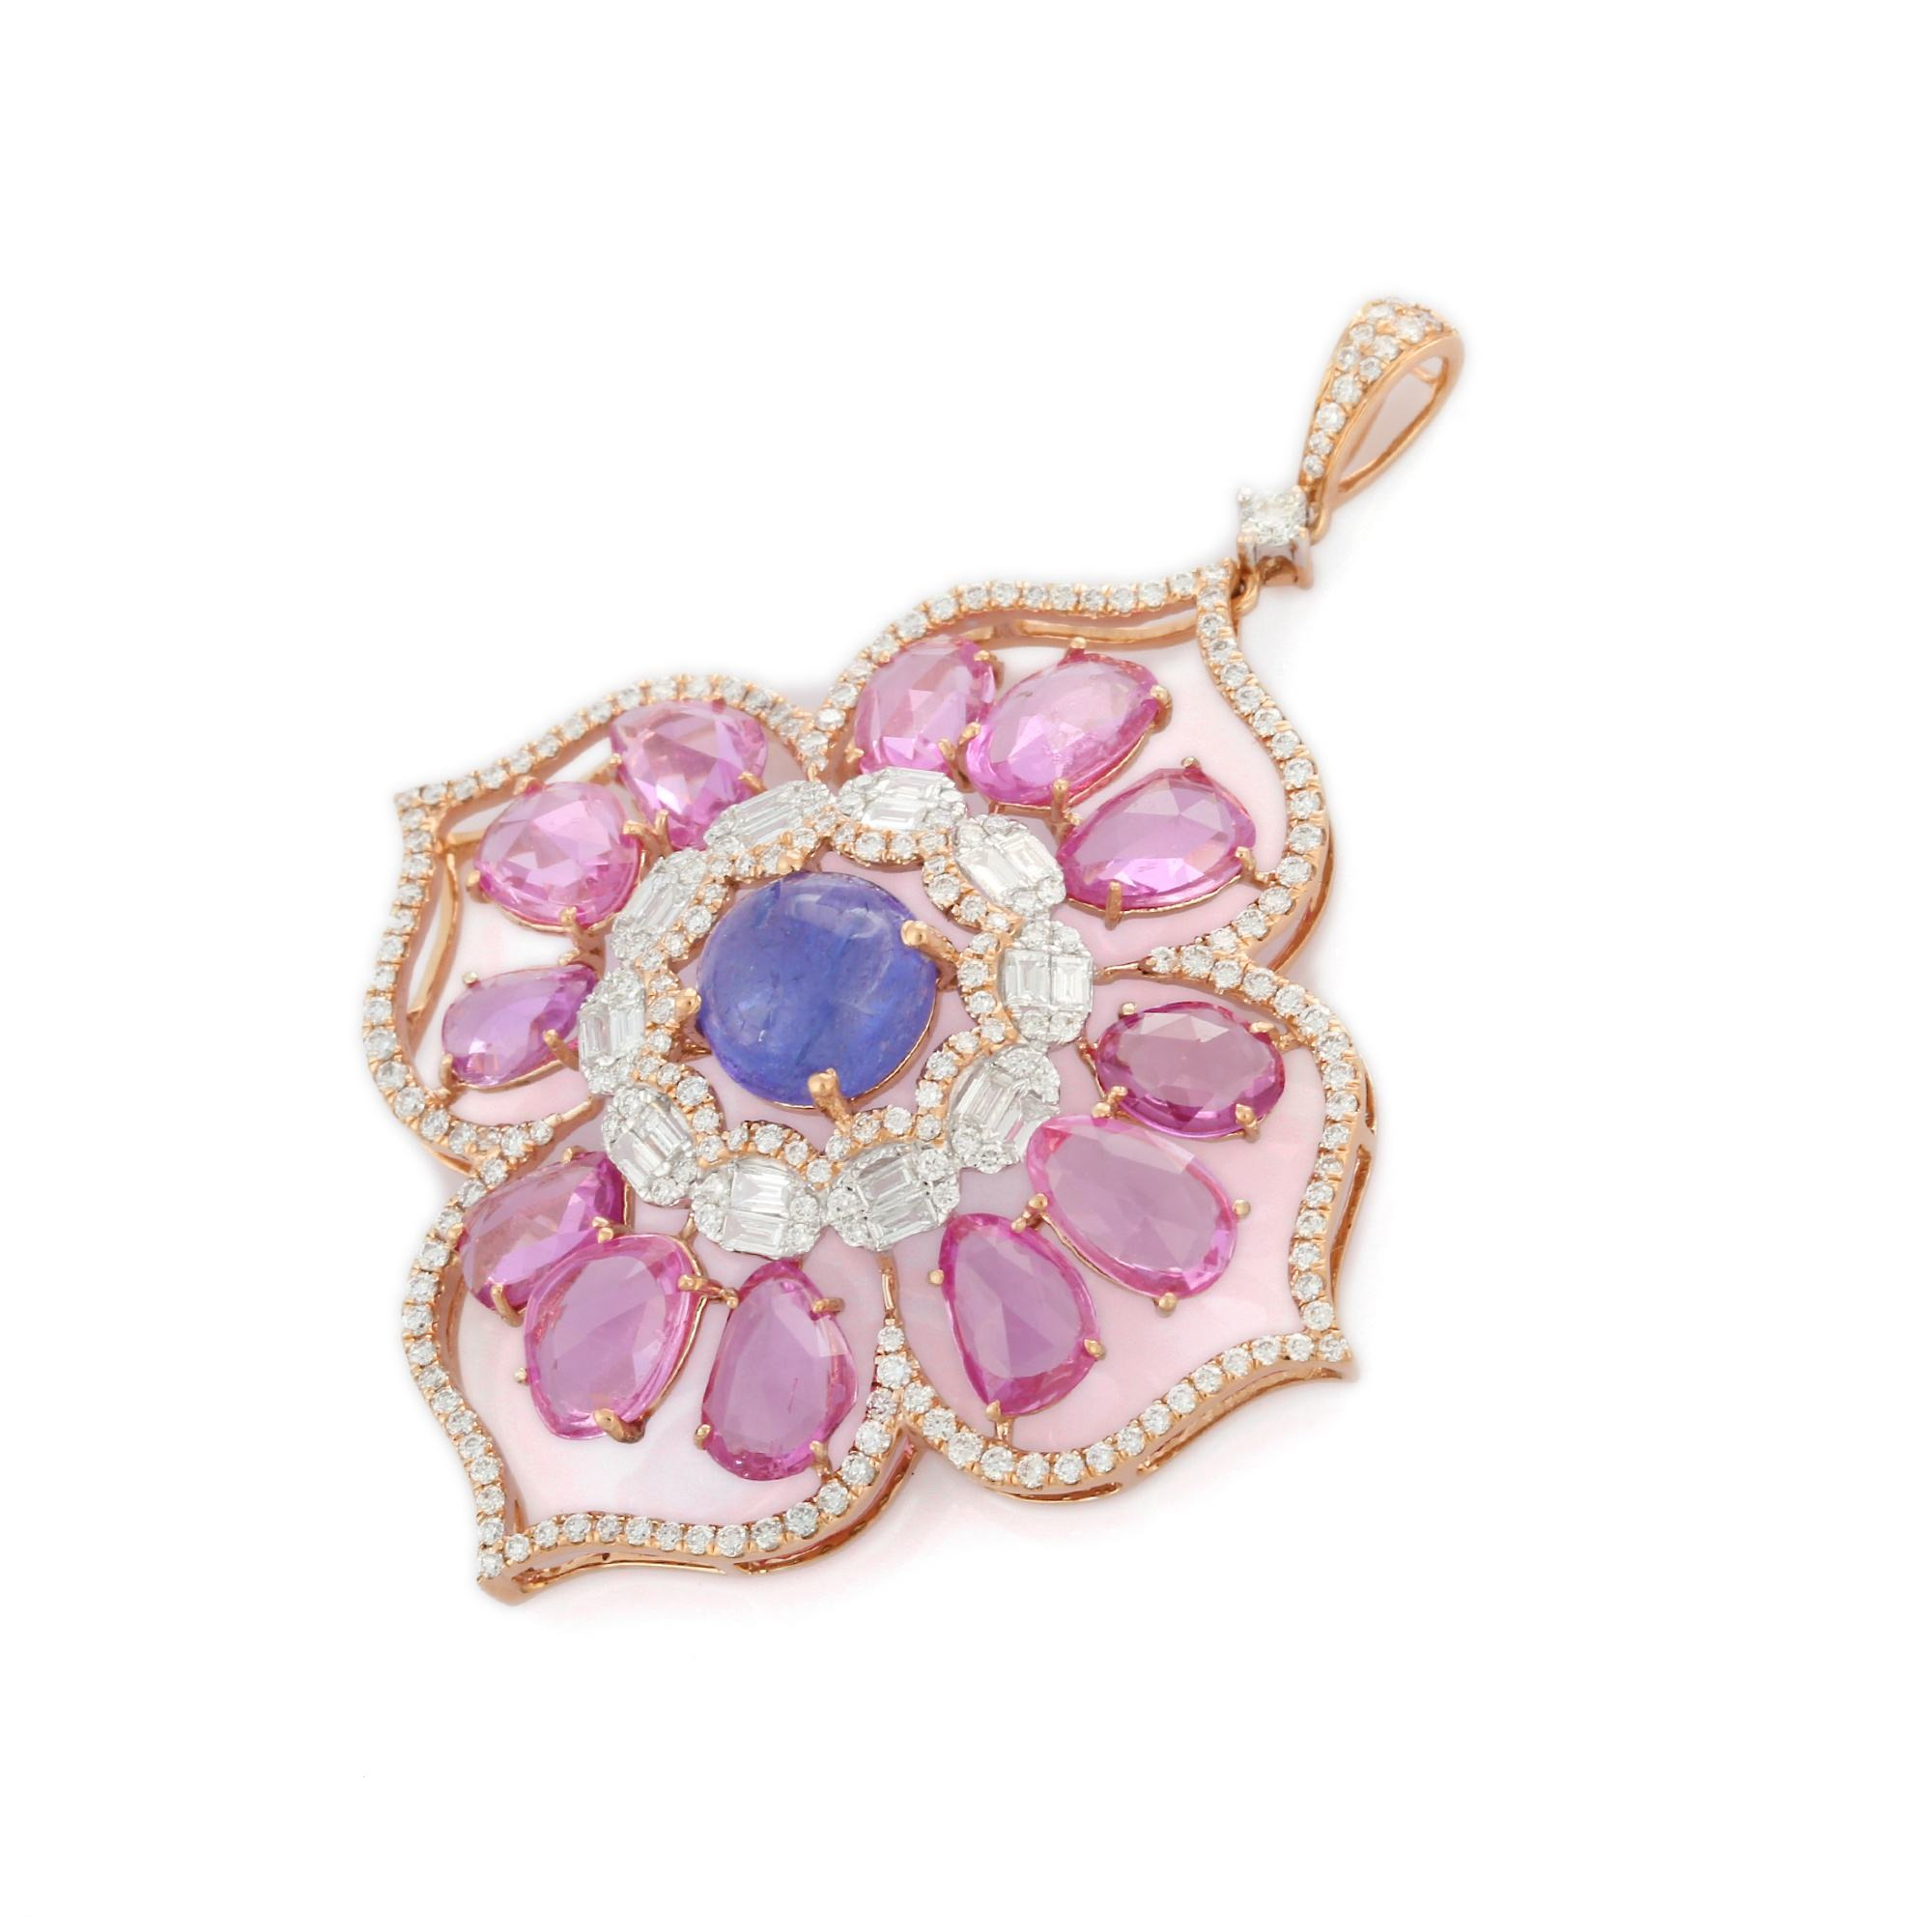 Classic Natural Precious Sapphire & Tanzanite Round、Unshape Gemstone With Diamond 18 18k Solid Pink Gold Pendant